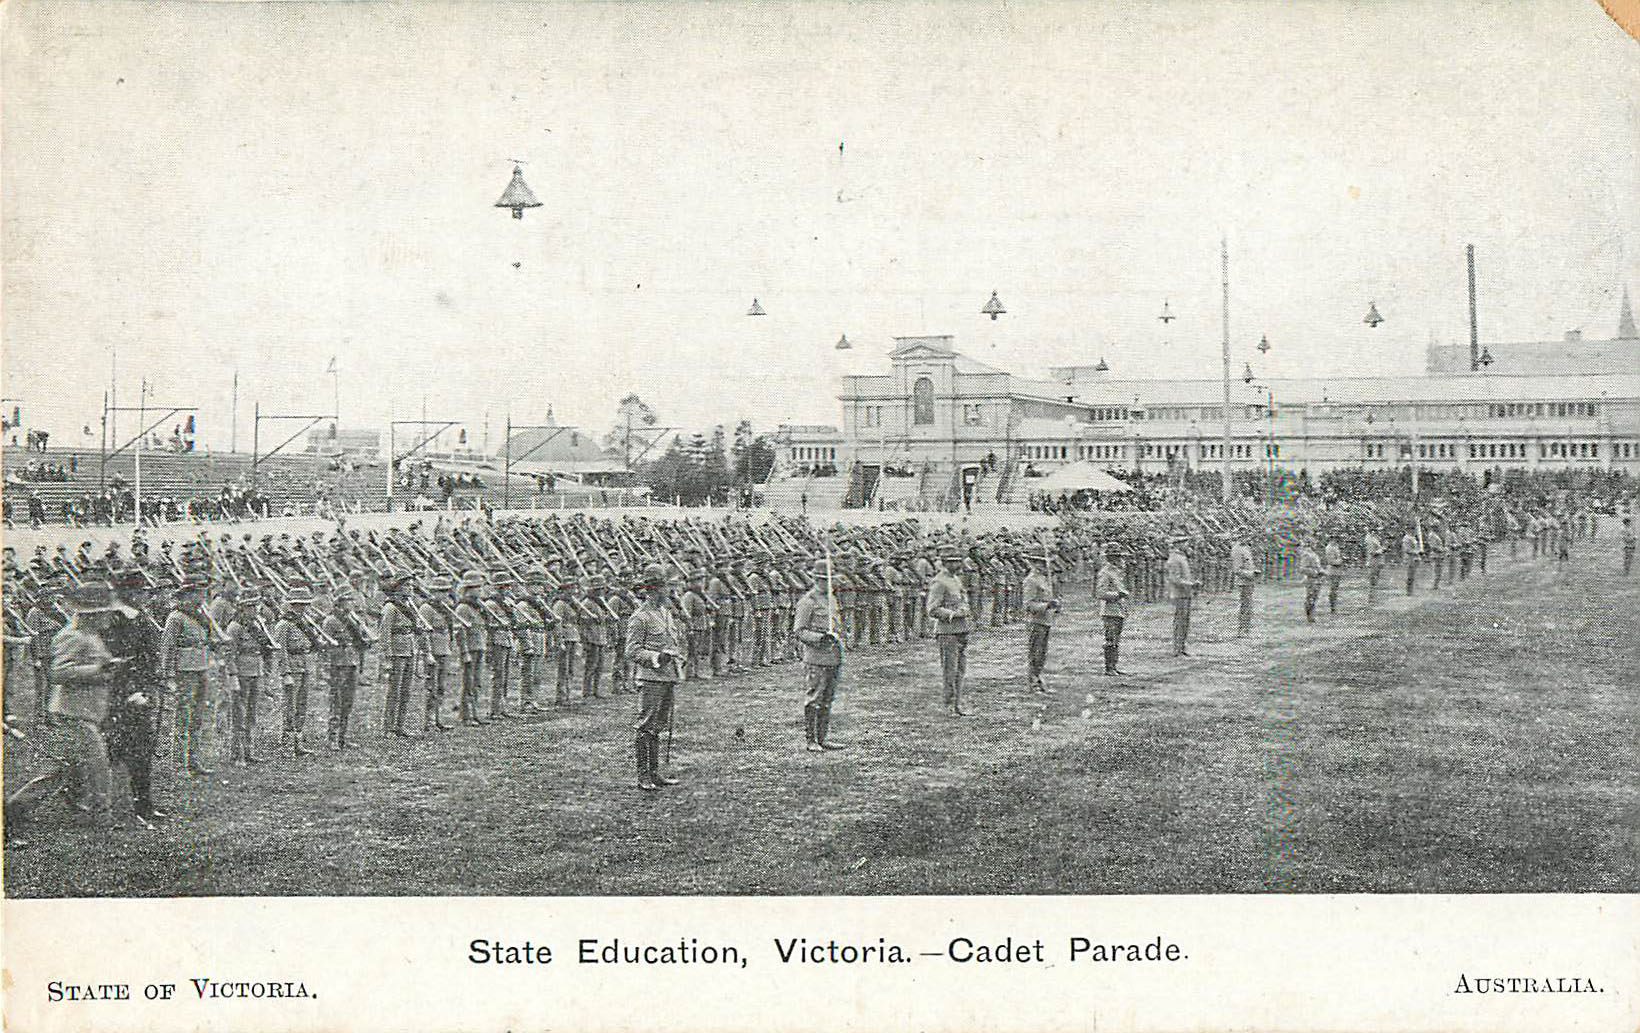 Cadet Parade, Stated Education, Victoria - Australia